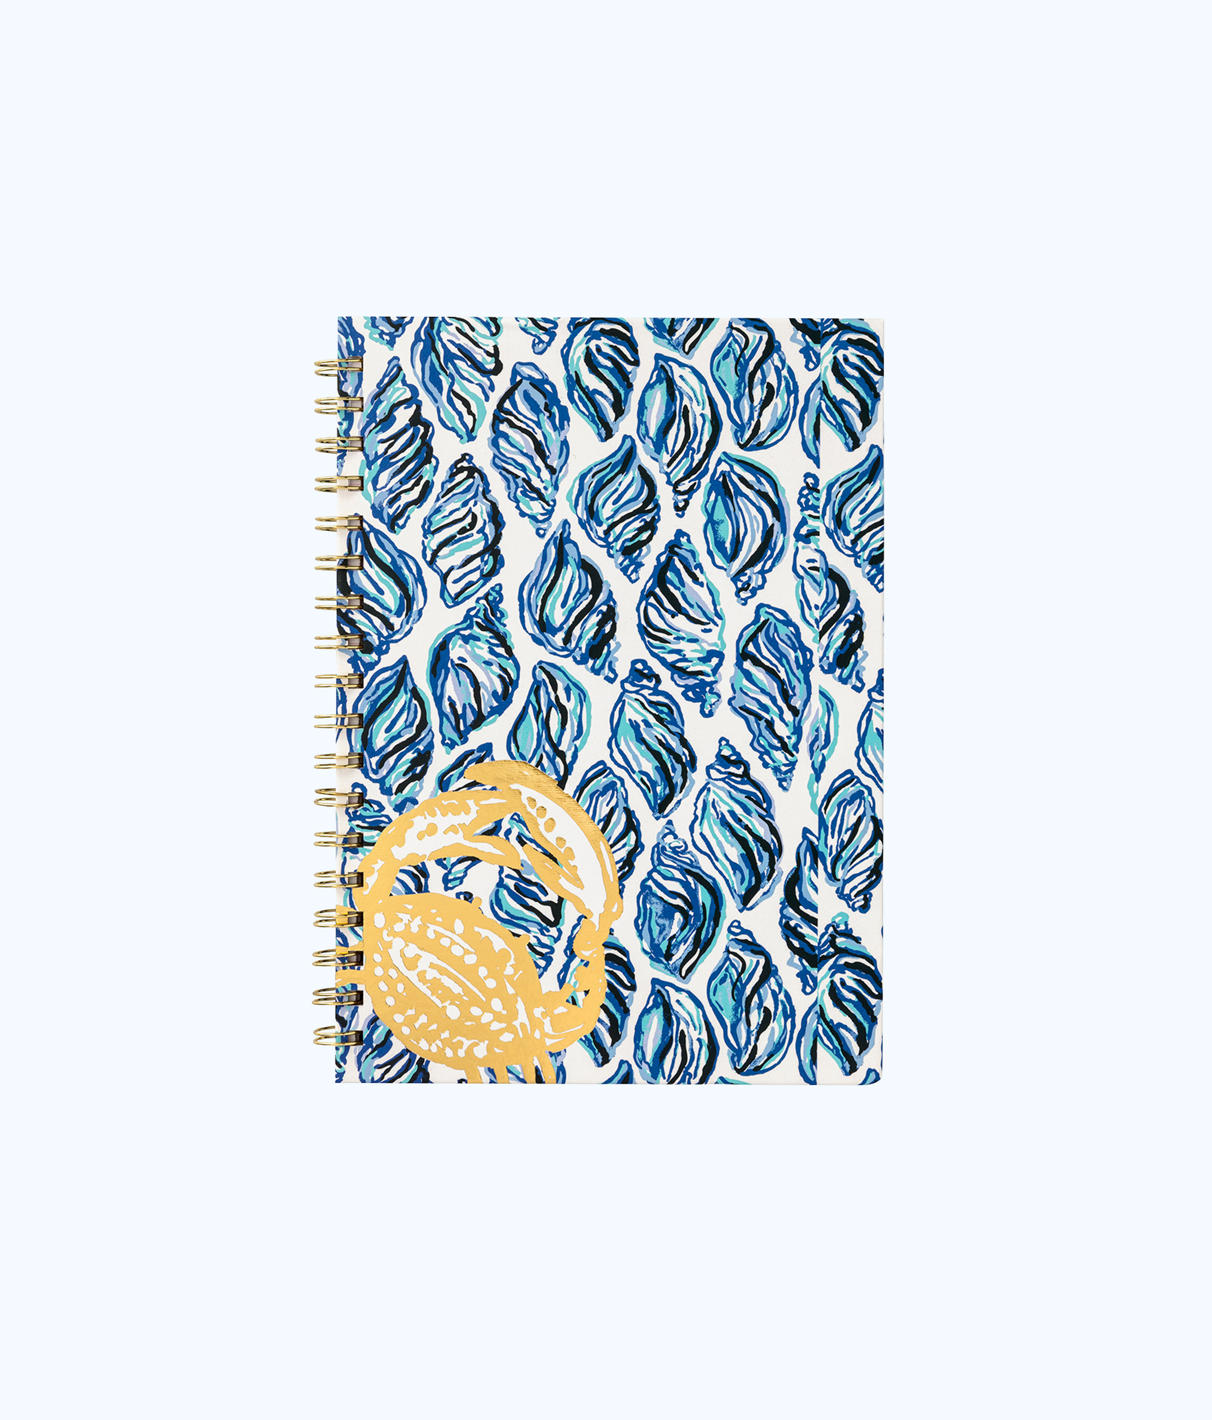 Lilly Pulitzer Lilly Pulitzer Notebook Hard Cover